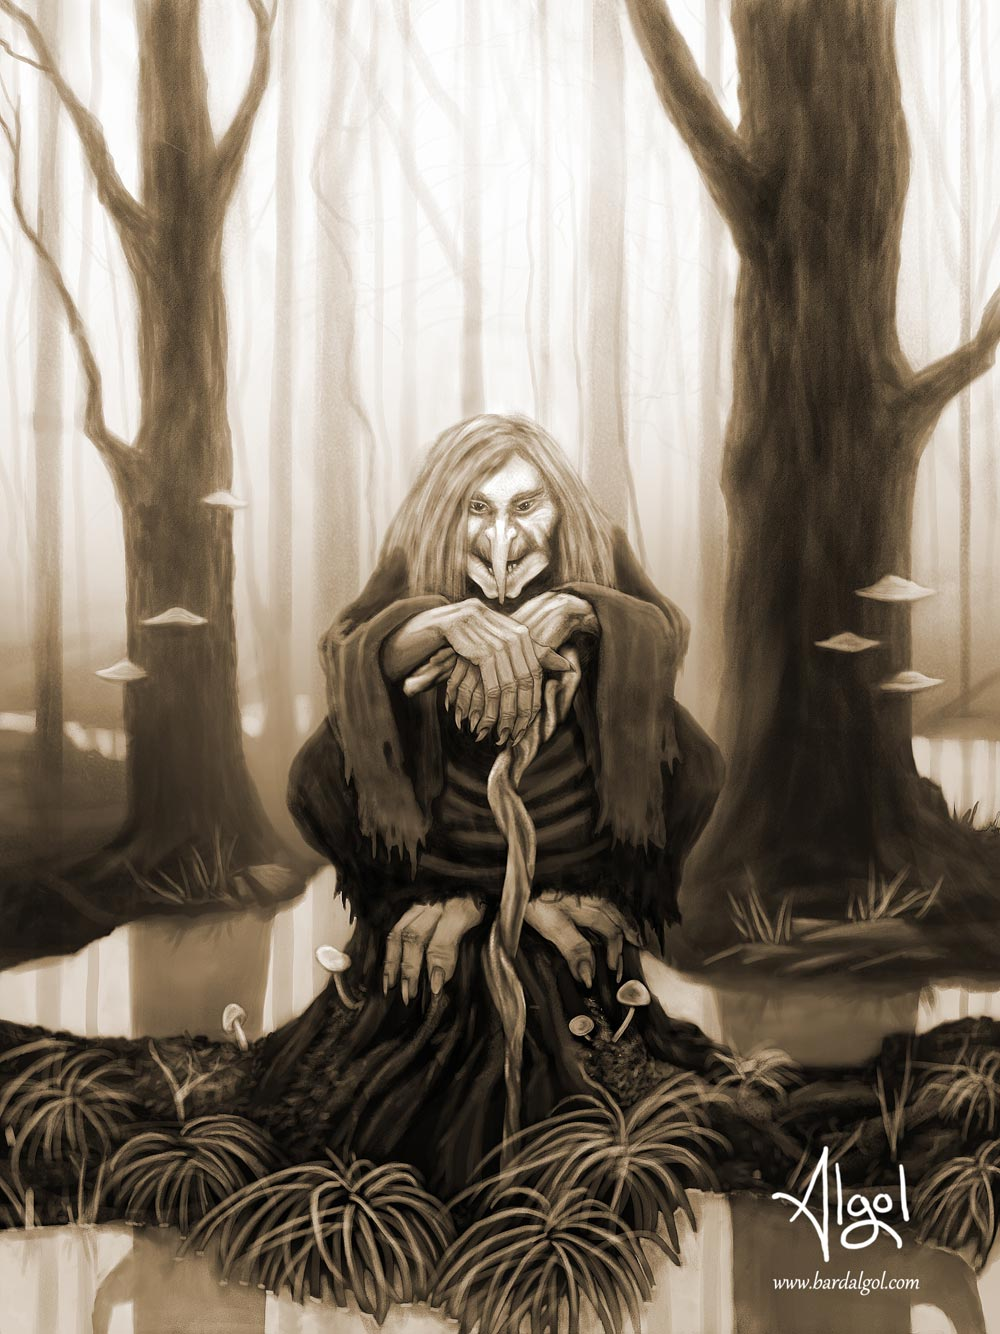 baba yaga by bard algol sepia tone forest swamp witch